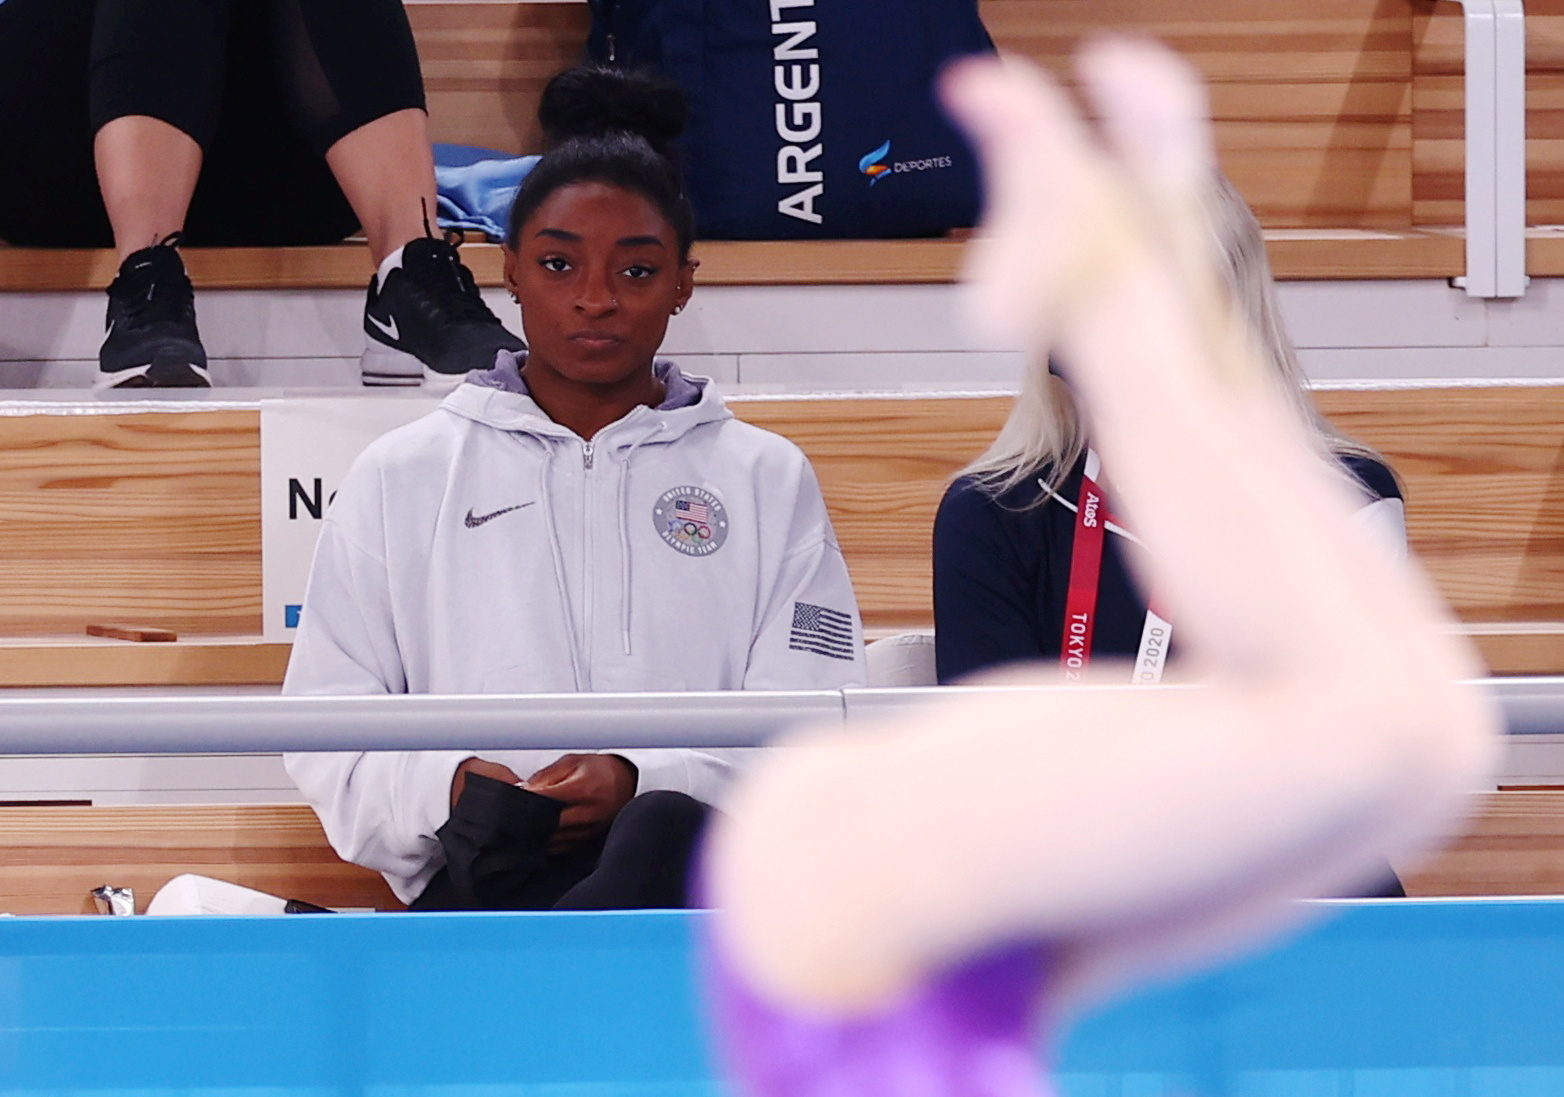 Tokyo 2020 Olympics - Gymnastics - Artistic - Women's All-Around - Final - Ariake Gymnastics Centre, Tokyo, Japan - July 29, 2021. Simone Biles of the United States watches from the stands. REUTERS/Mike Blake